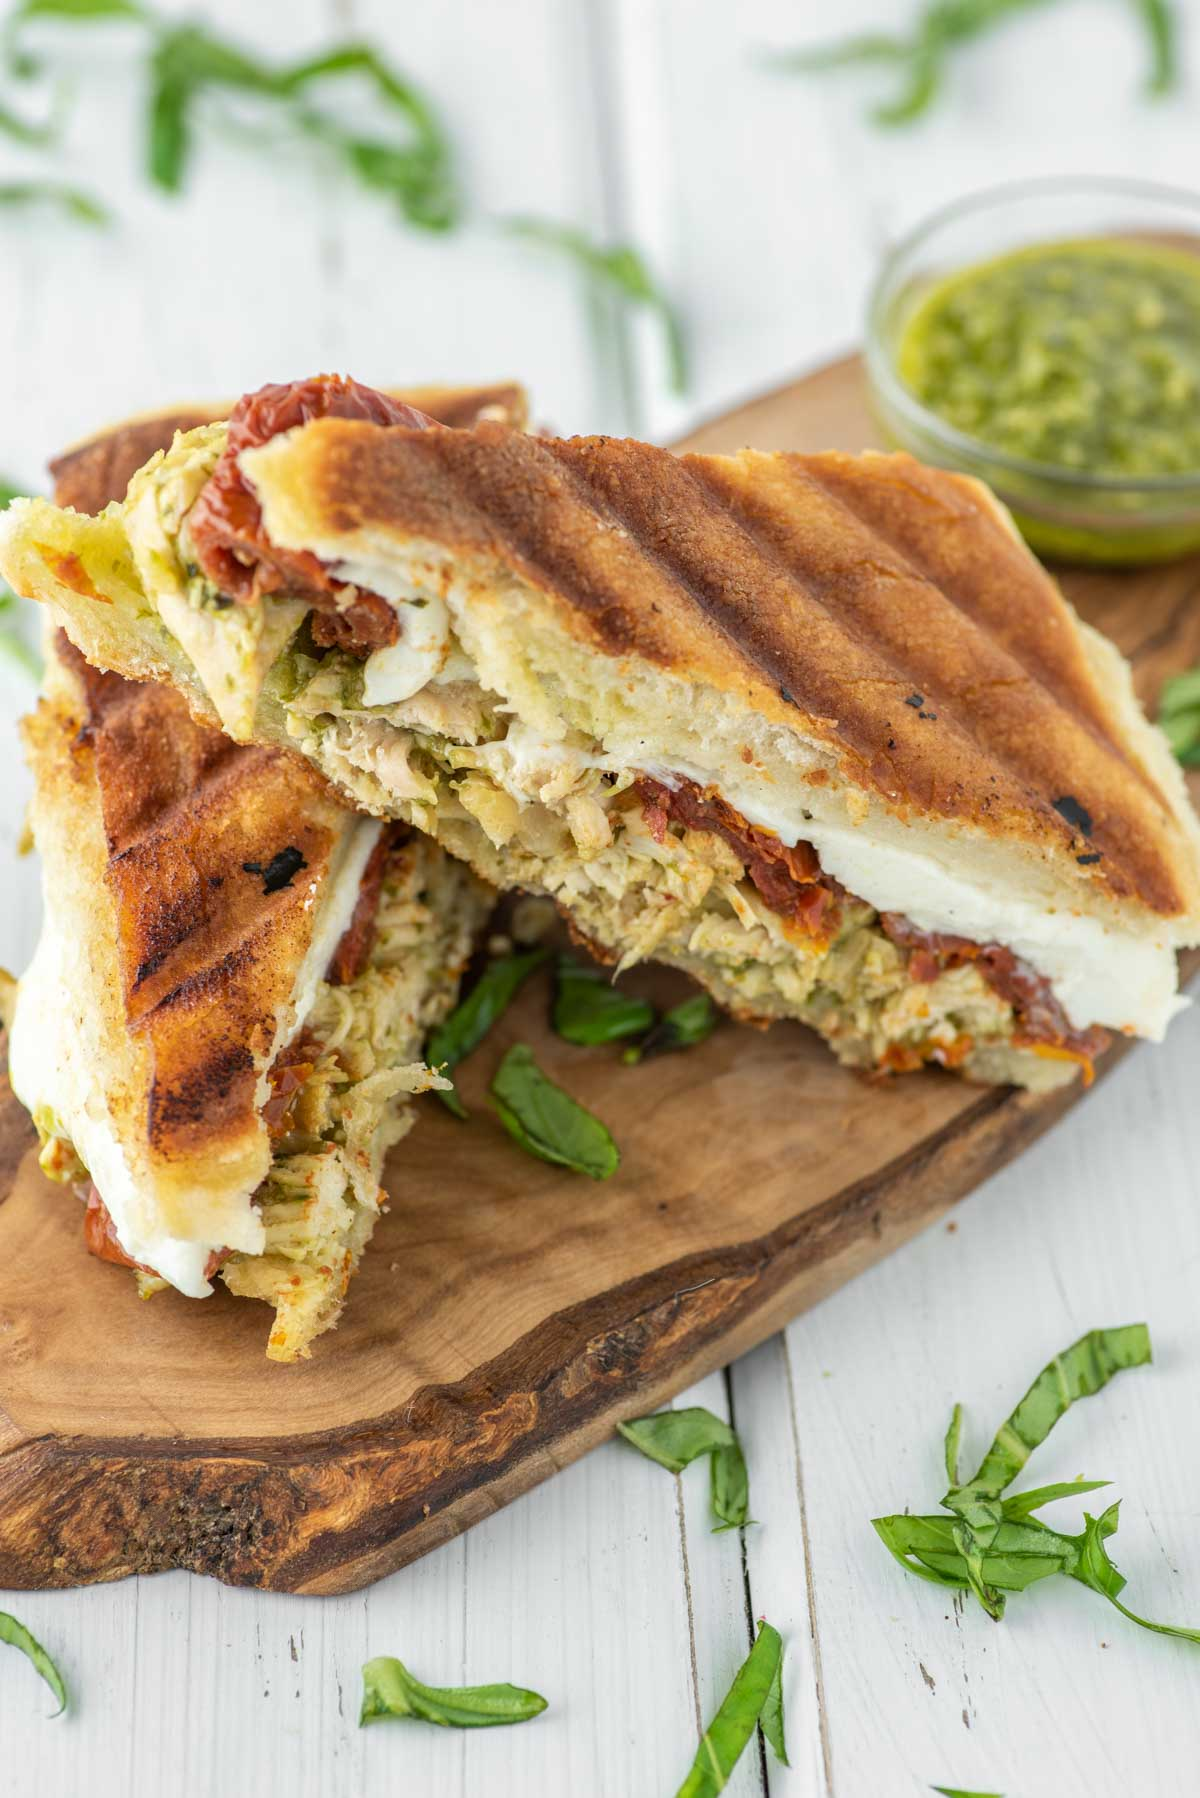 two slices of a chicken pesto panini on wood board with bowl of pesto in background